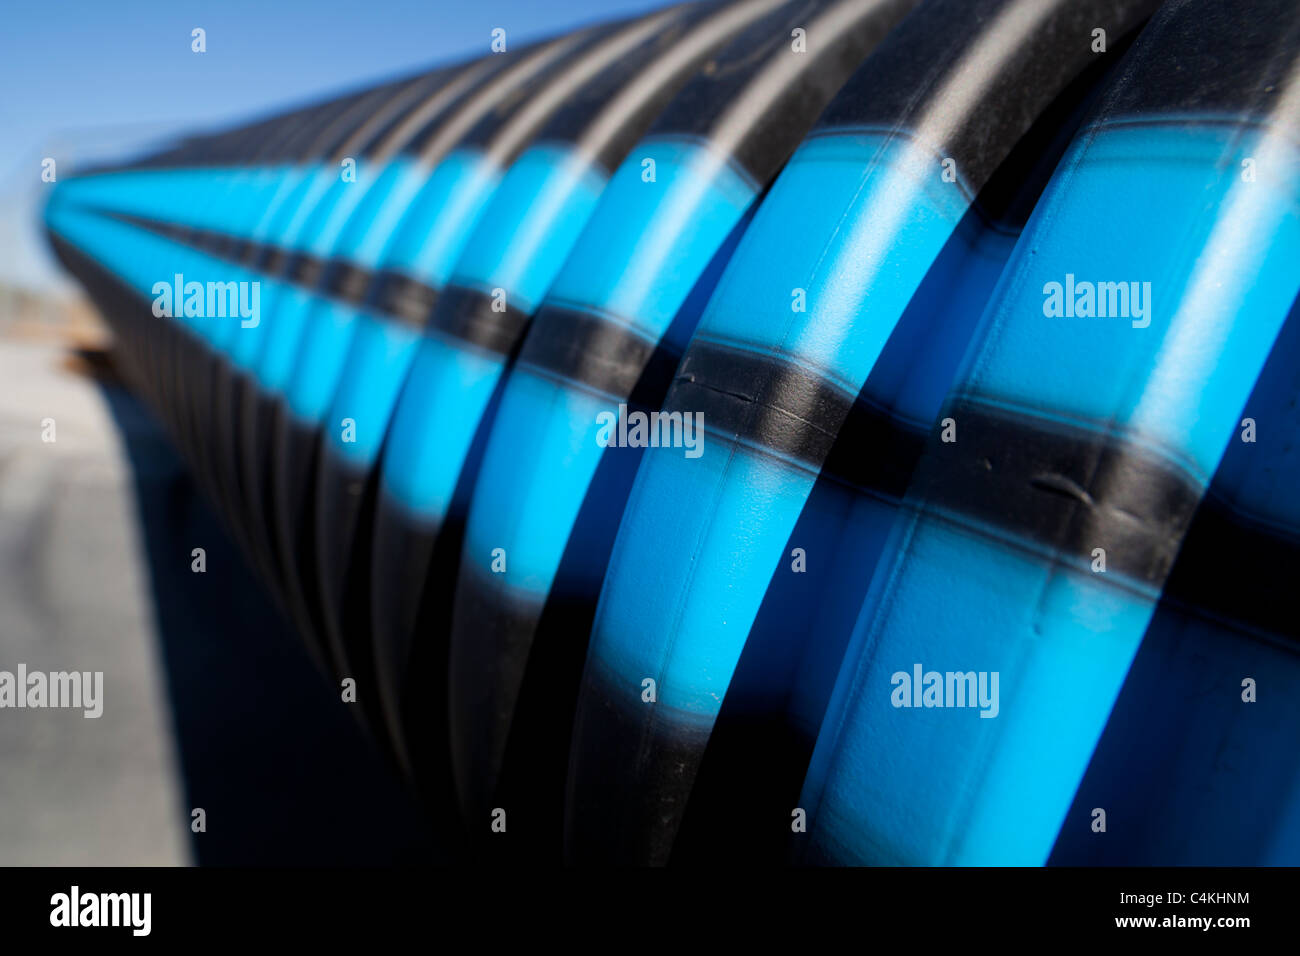 Blue and black stripes on grooved PVC water pipe surface - Stock Image